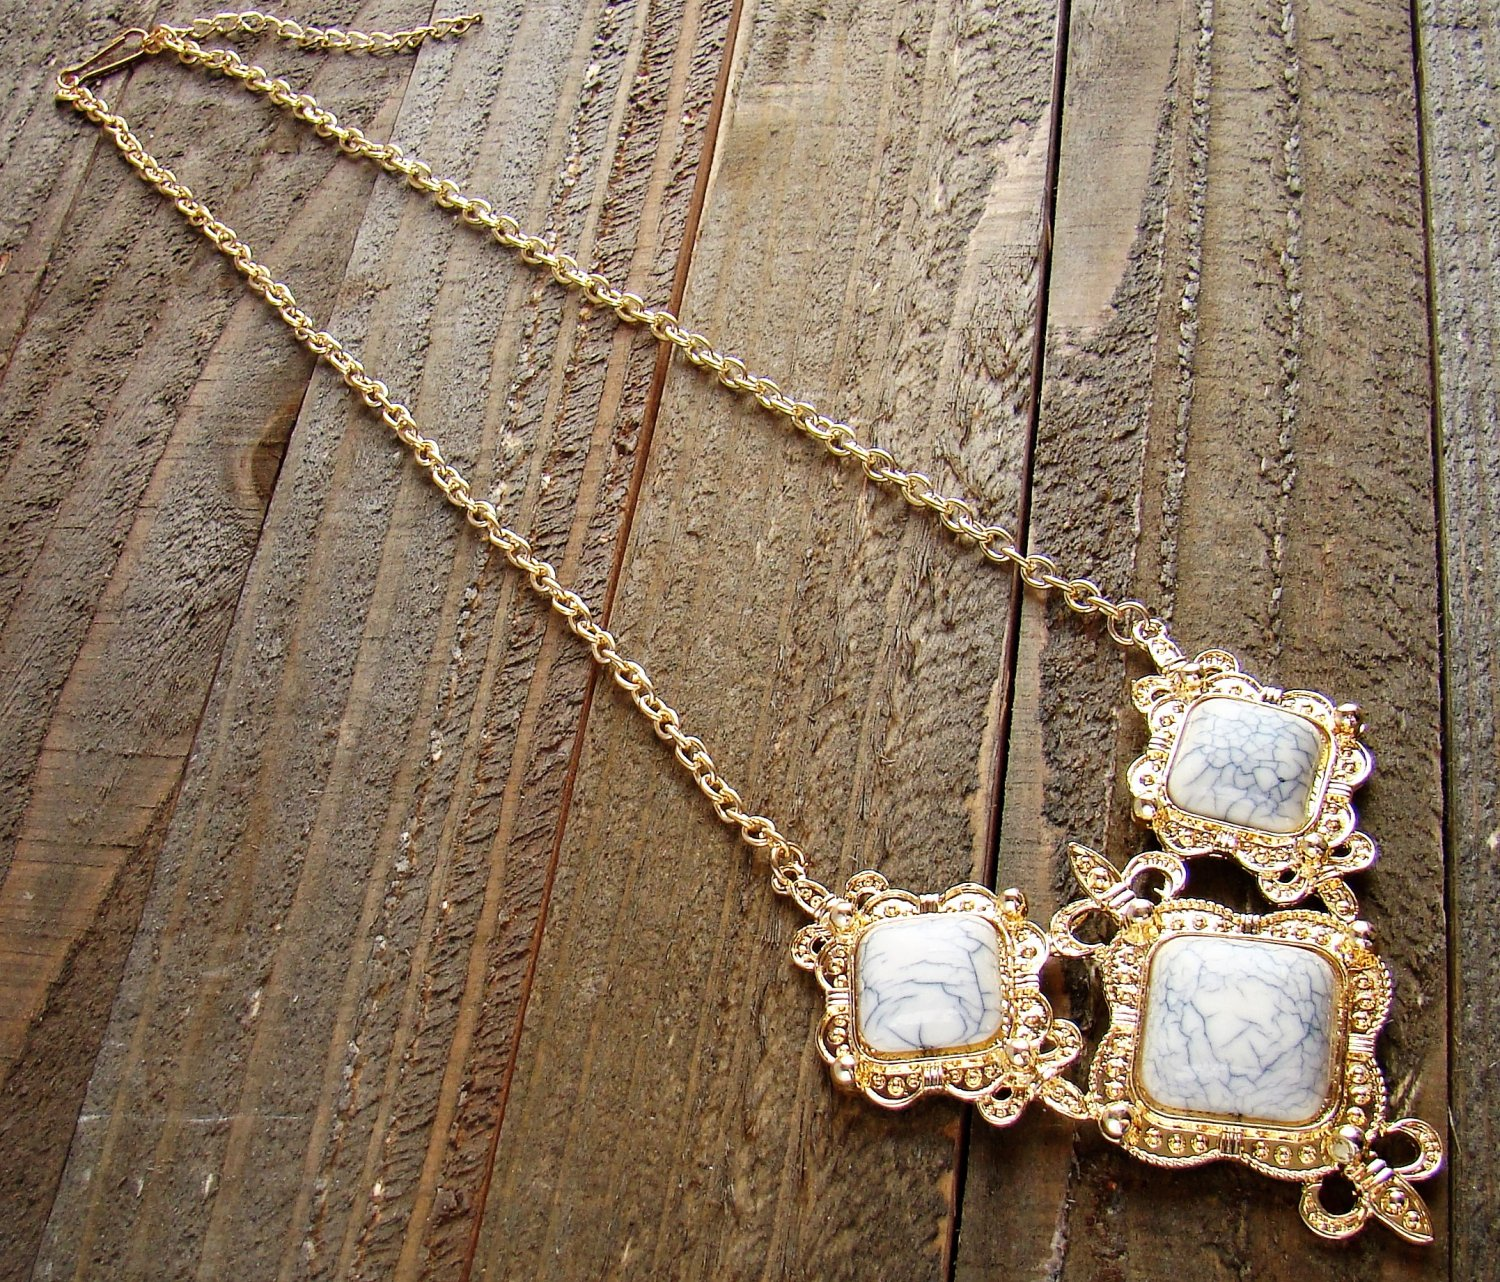 Filigree Triple Simulated White Stone Pendant Gold Chain Necklace Cowgirl Fashion Jewelry